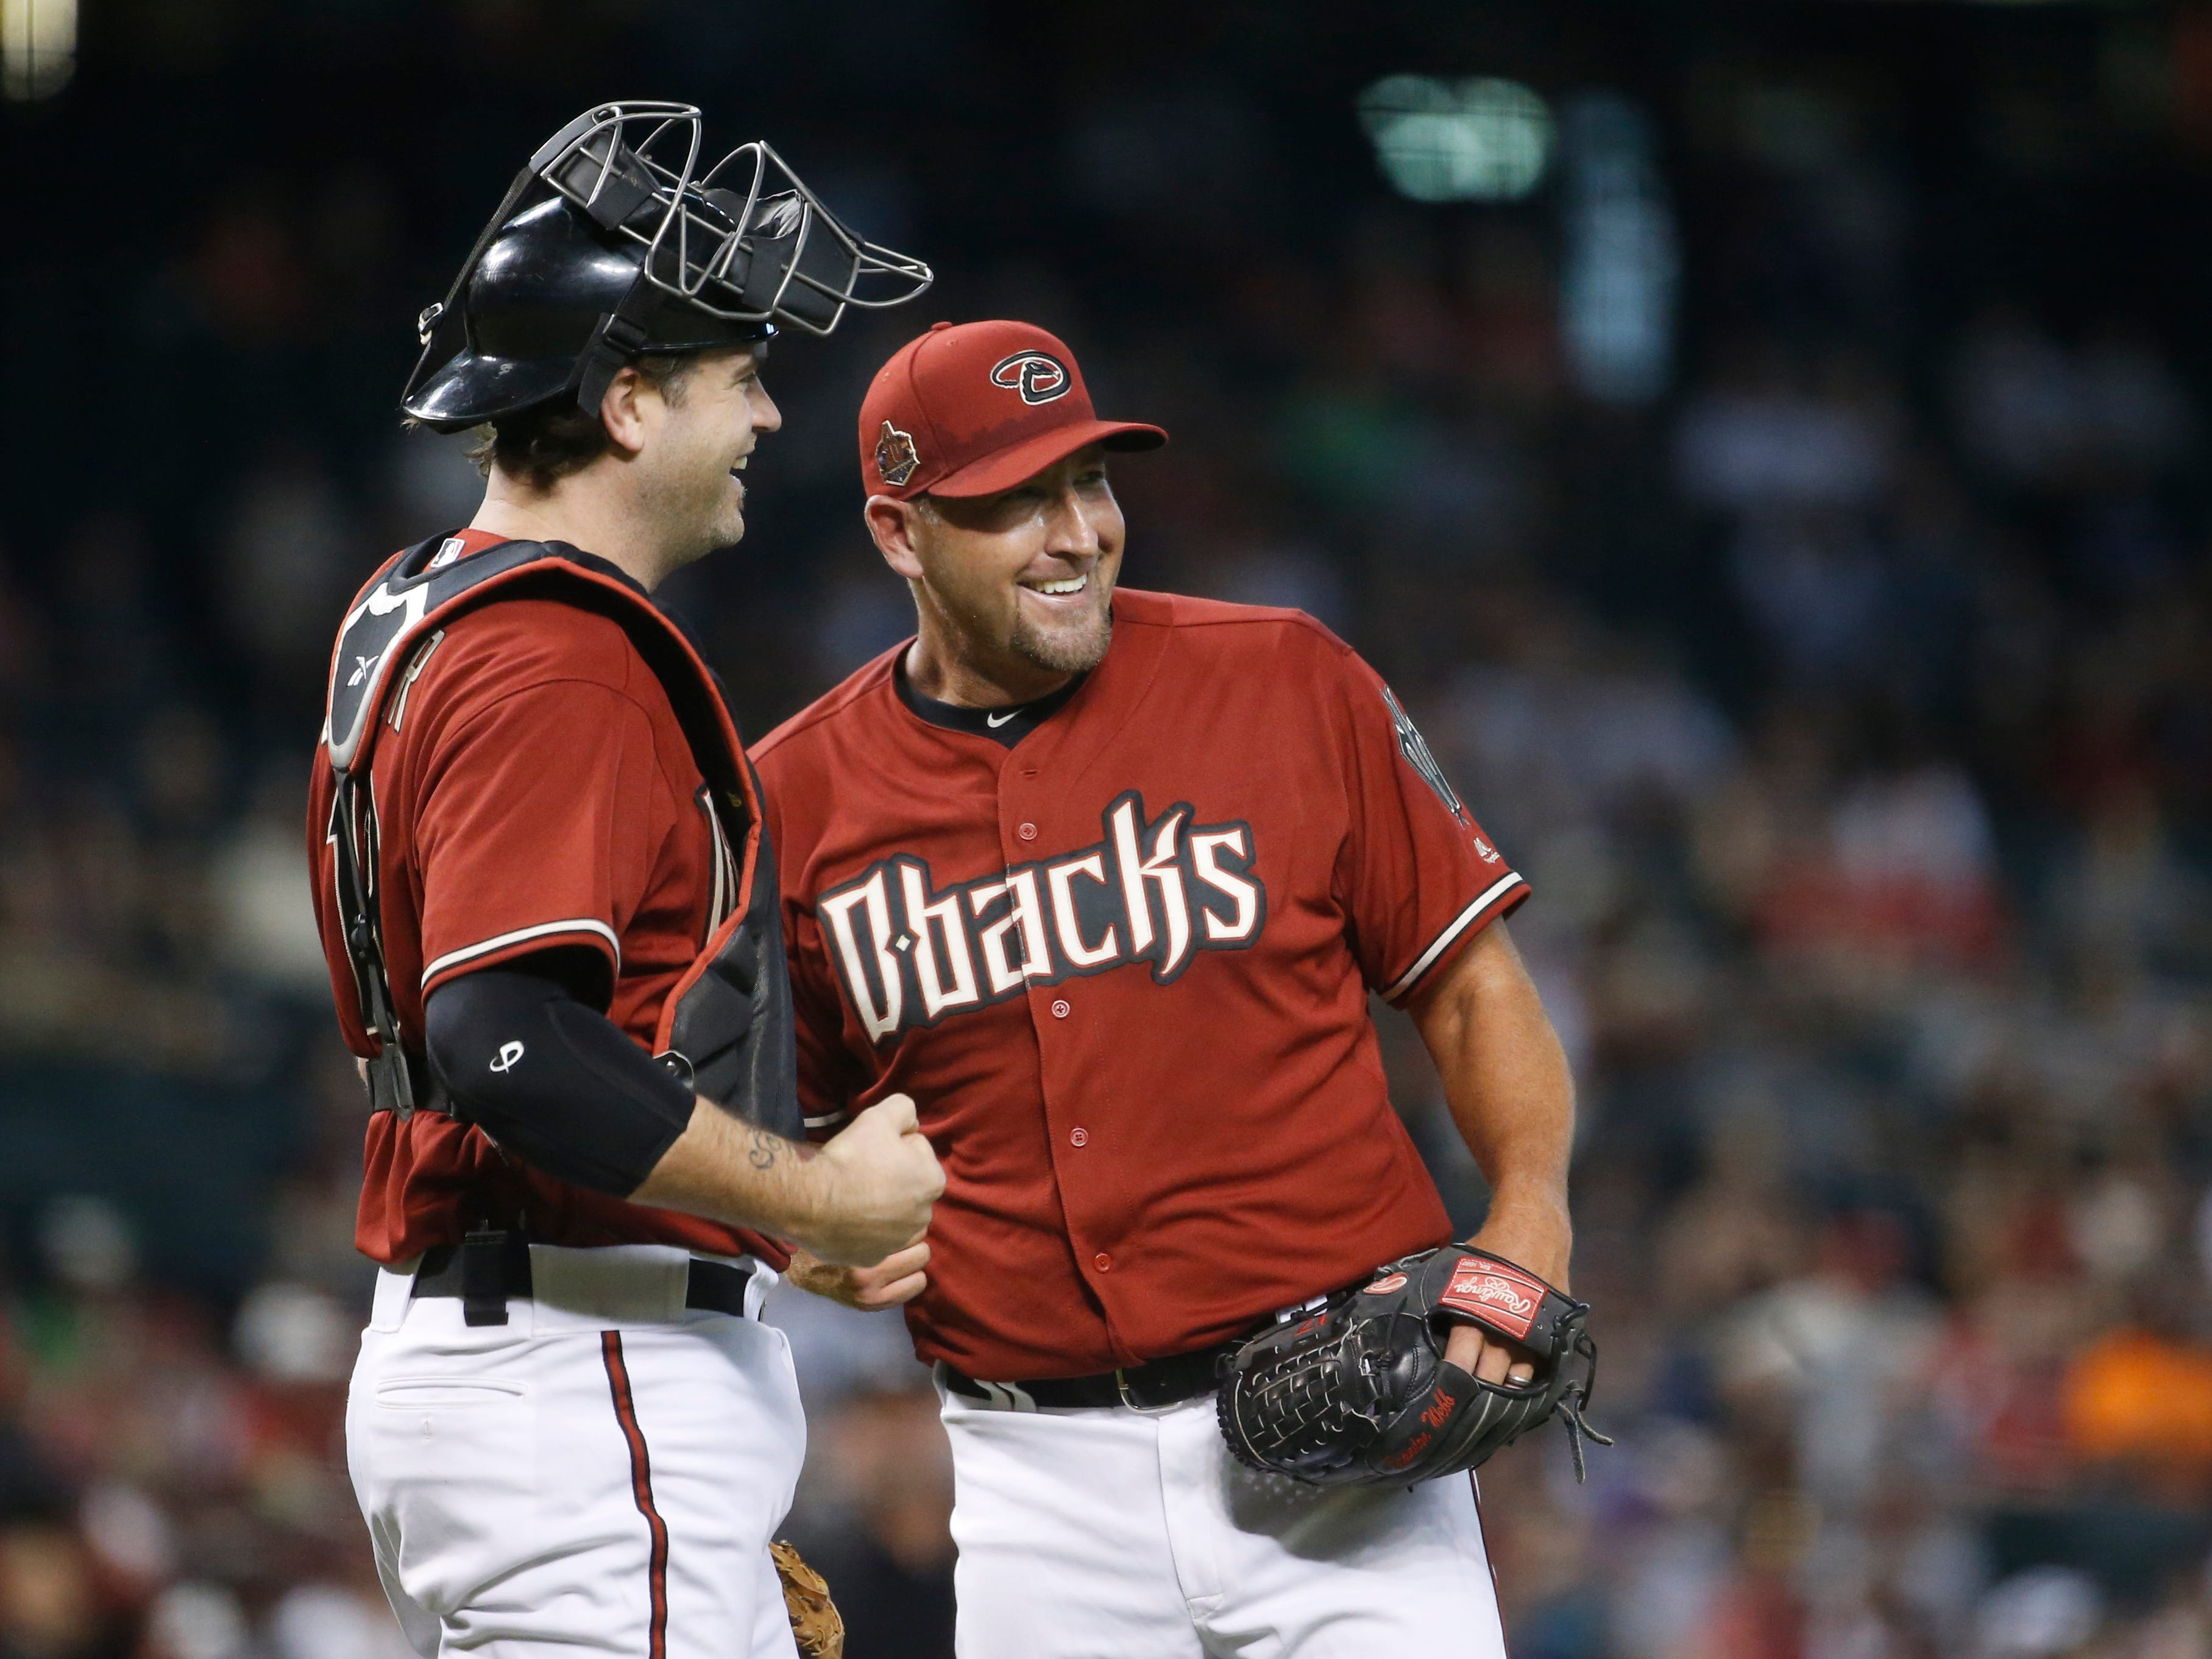 Diamondbacks Red team's Brandon Webb high-fives catcher Chris Snyder (19) after being pulled in the first inning during the Generations Diamondbacks Alumni game at Chase Field in Phoenix, Ariz. on Aug. 4, 2018.